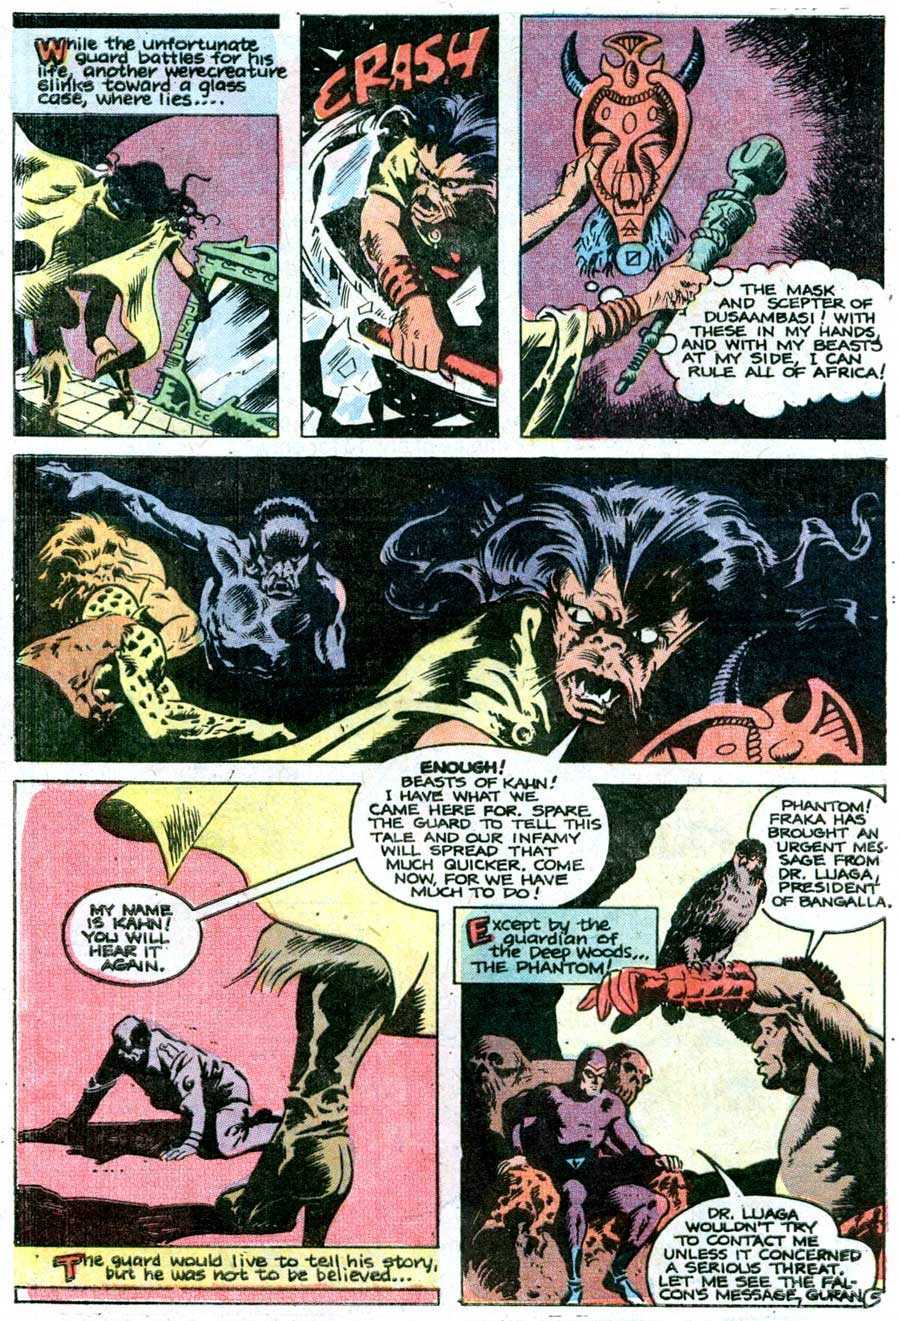 The Phantom v2 #68 charlton comic book page art by Don Newton